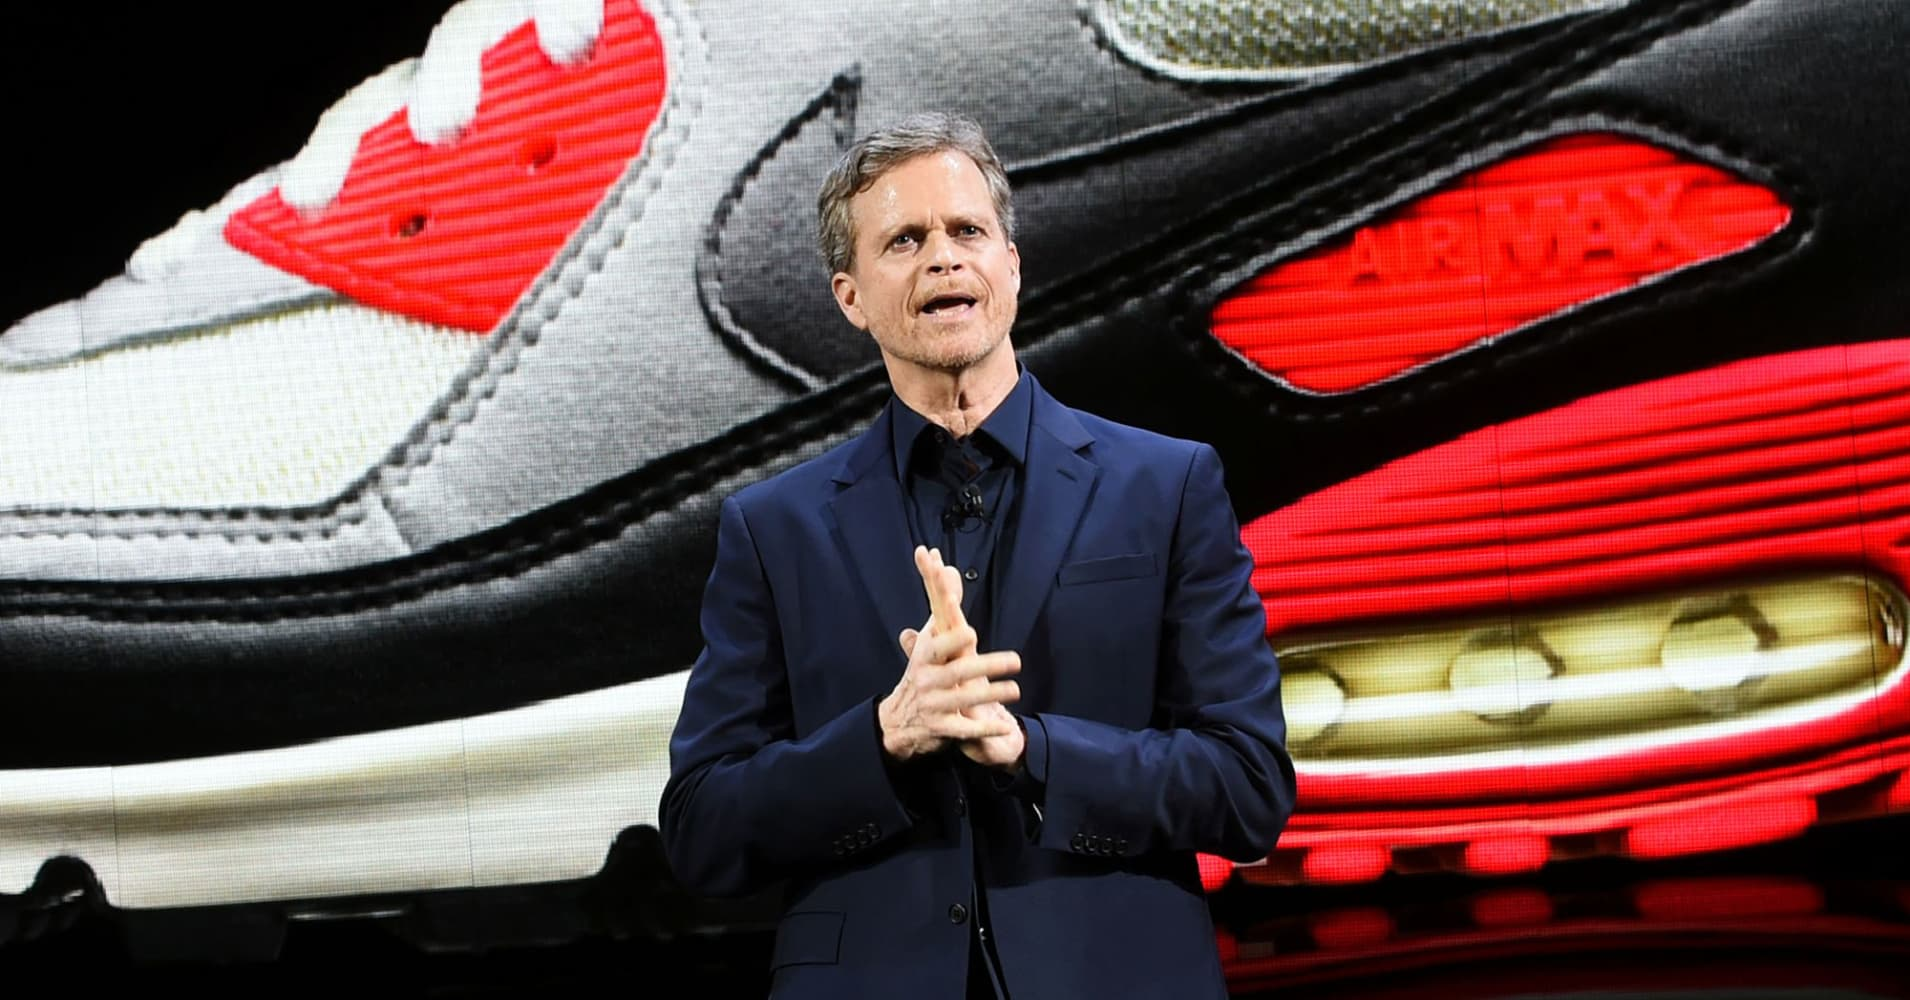 Nike shares fall after North American sales growth disappoints - CNBC image